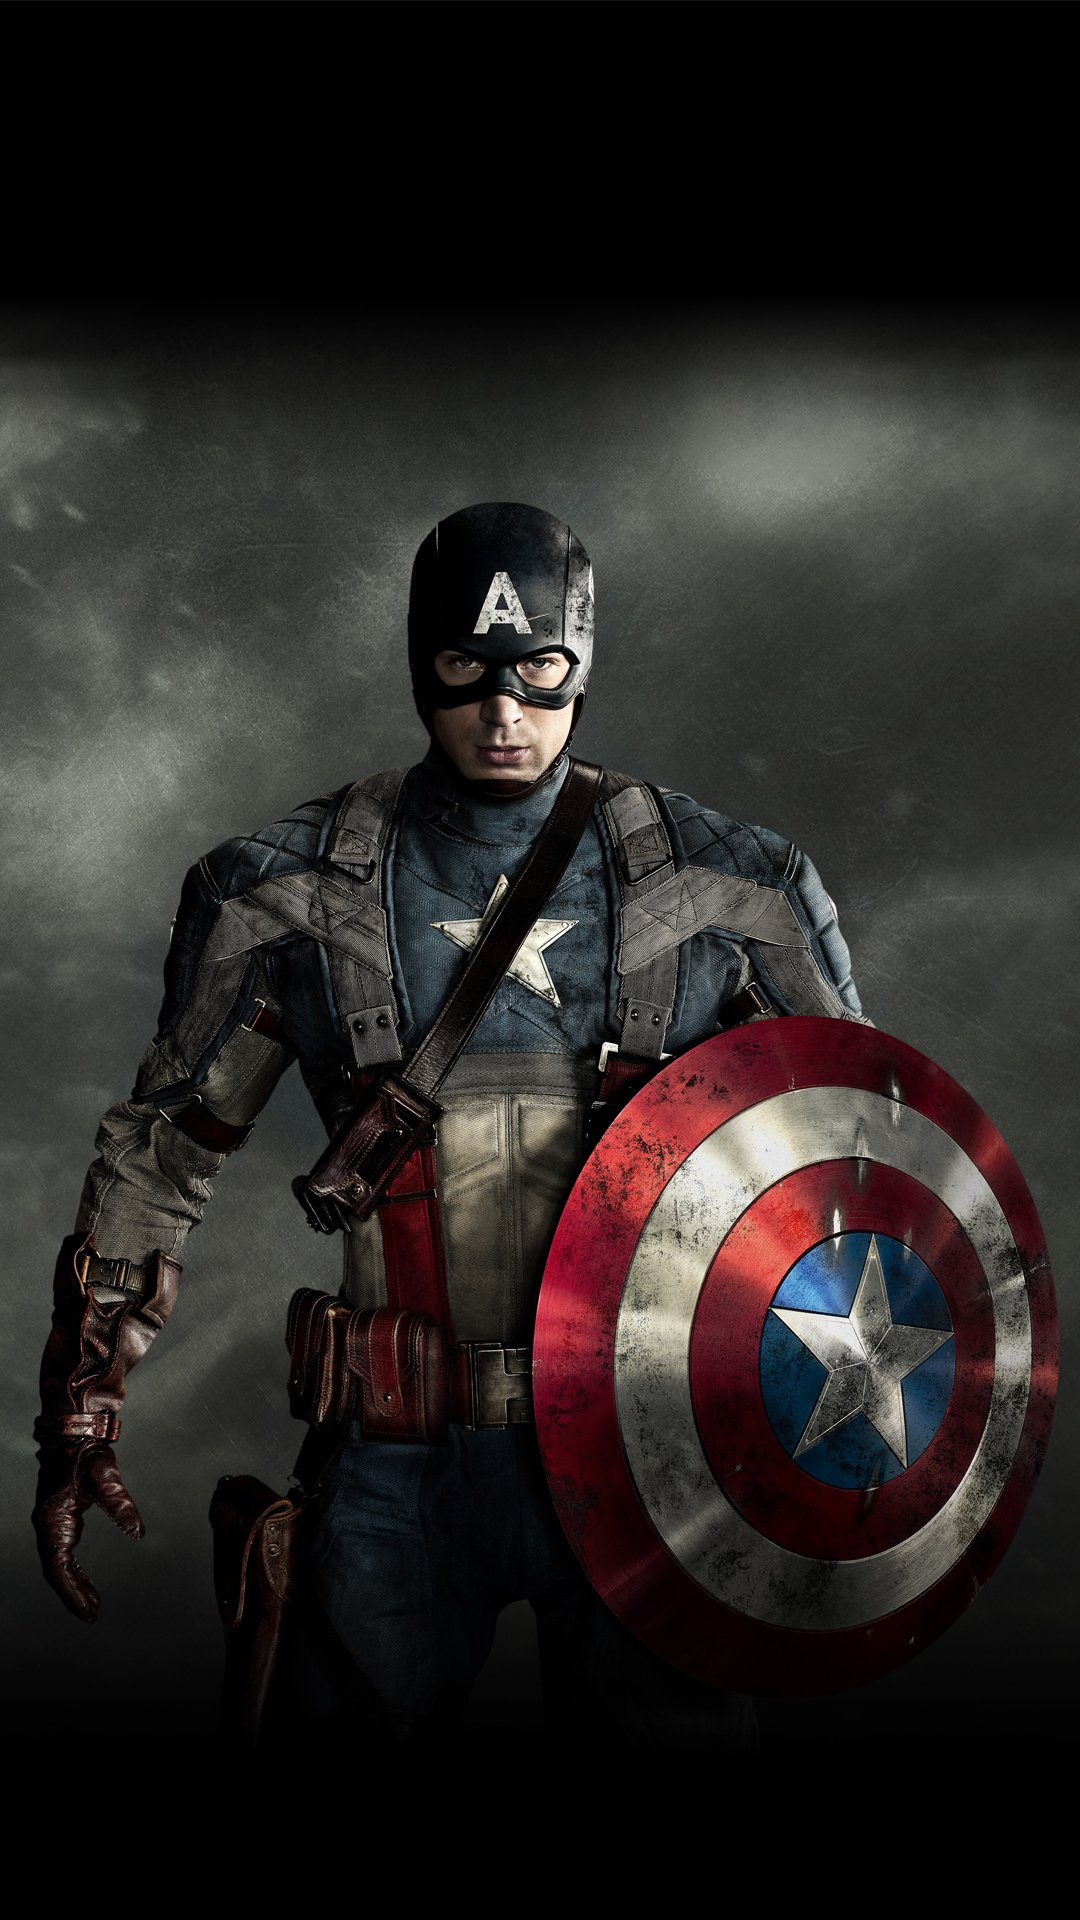 The Avengers Captain America HTC hd wallpaper 1080x1920